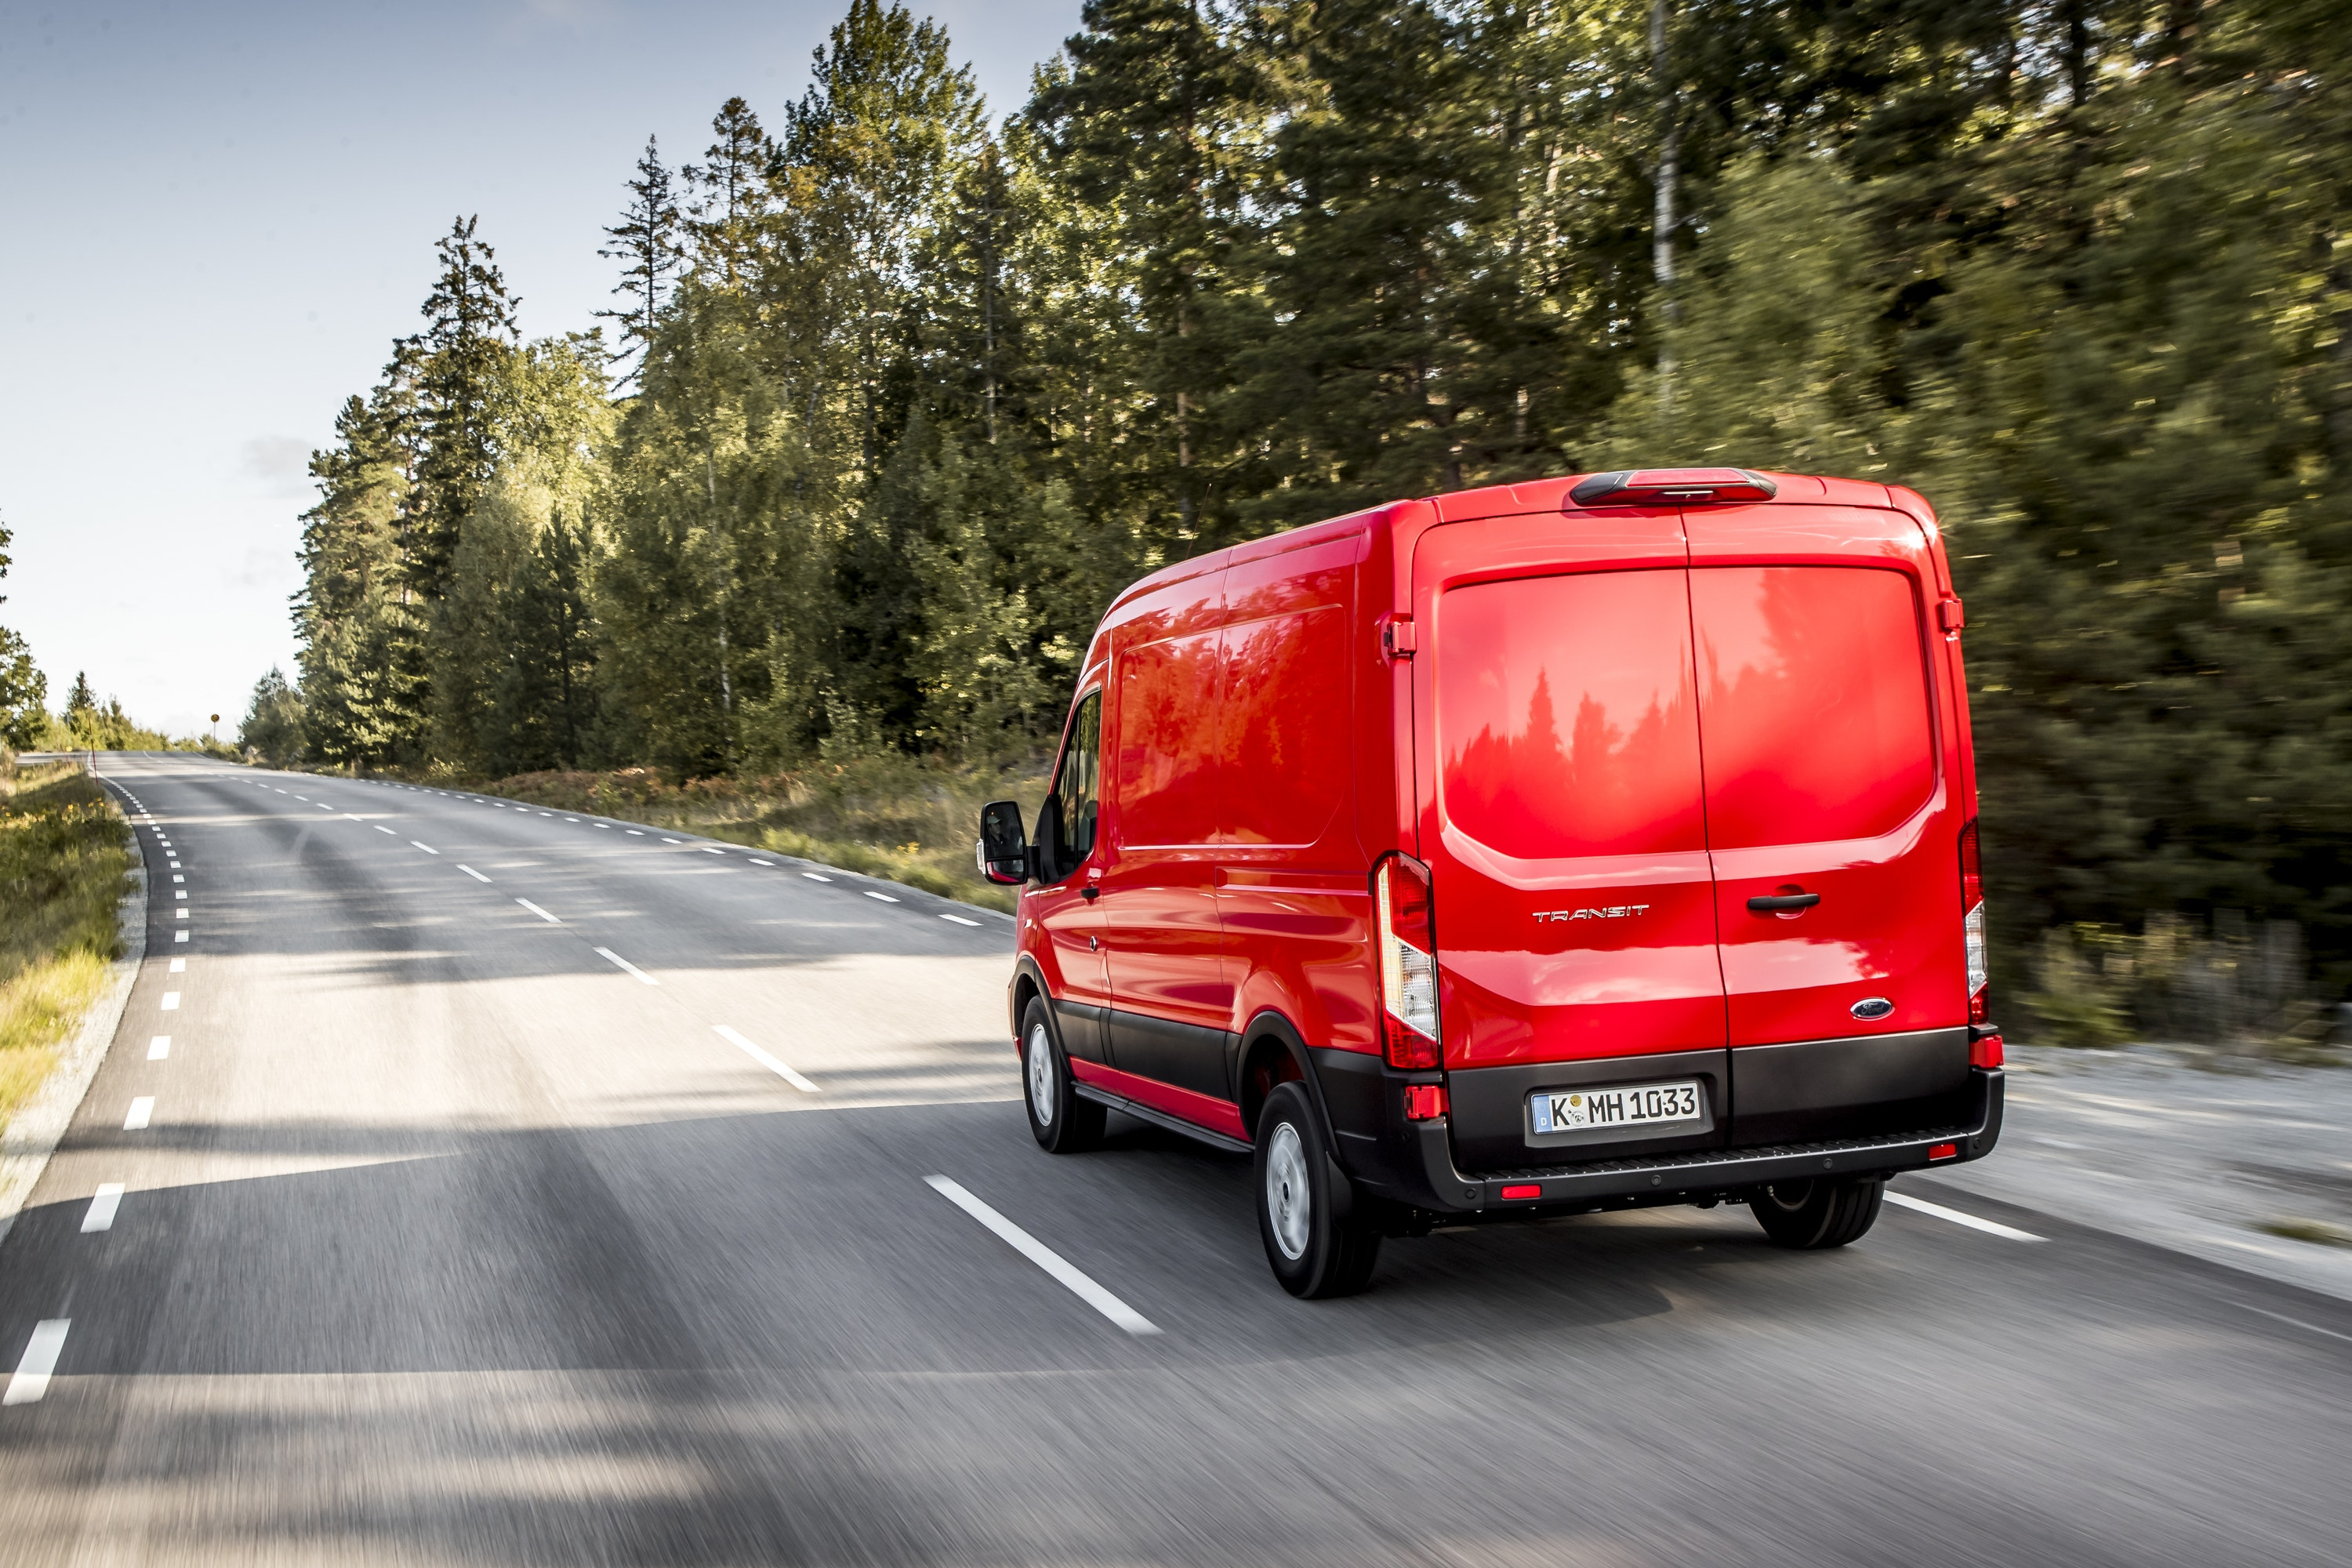 Rear view of a Red Ford Transit